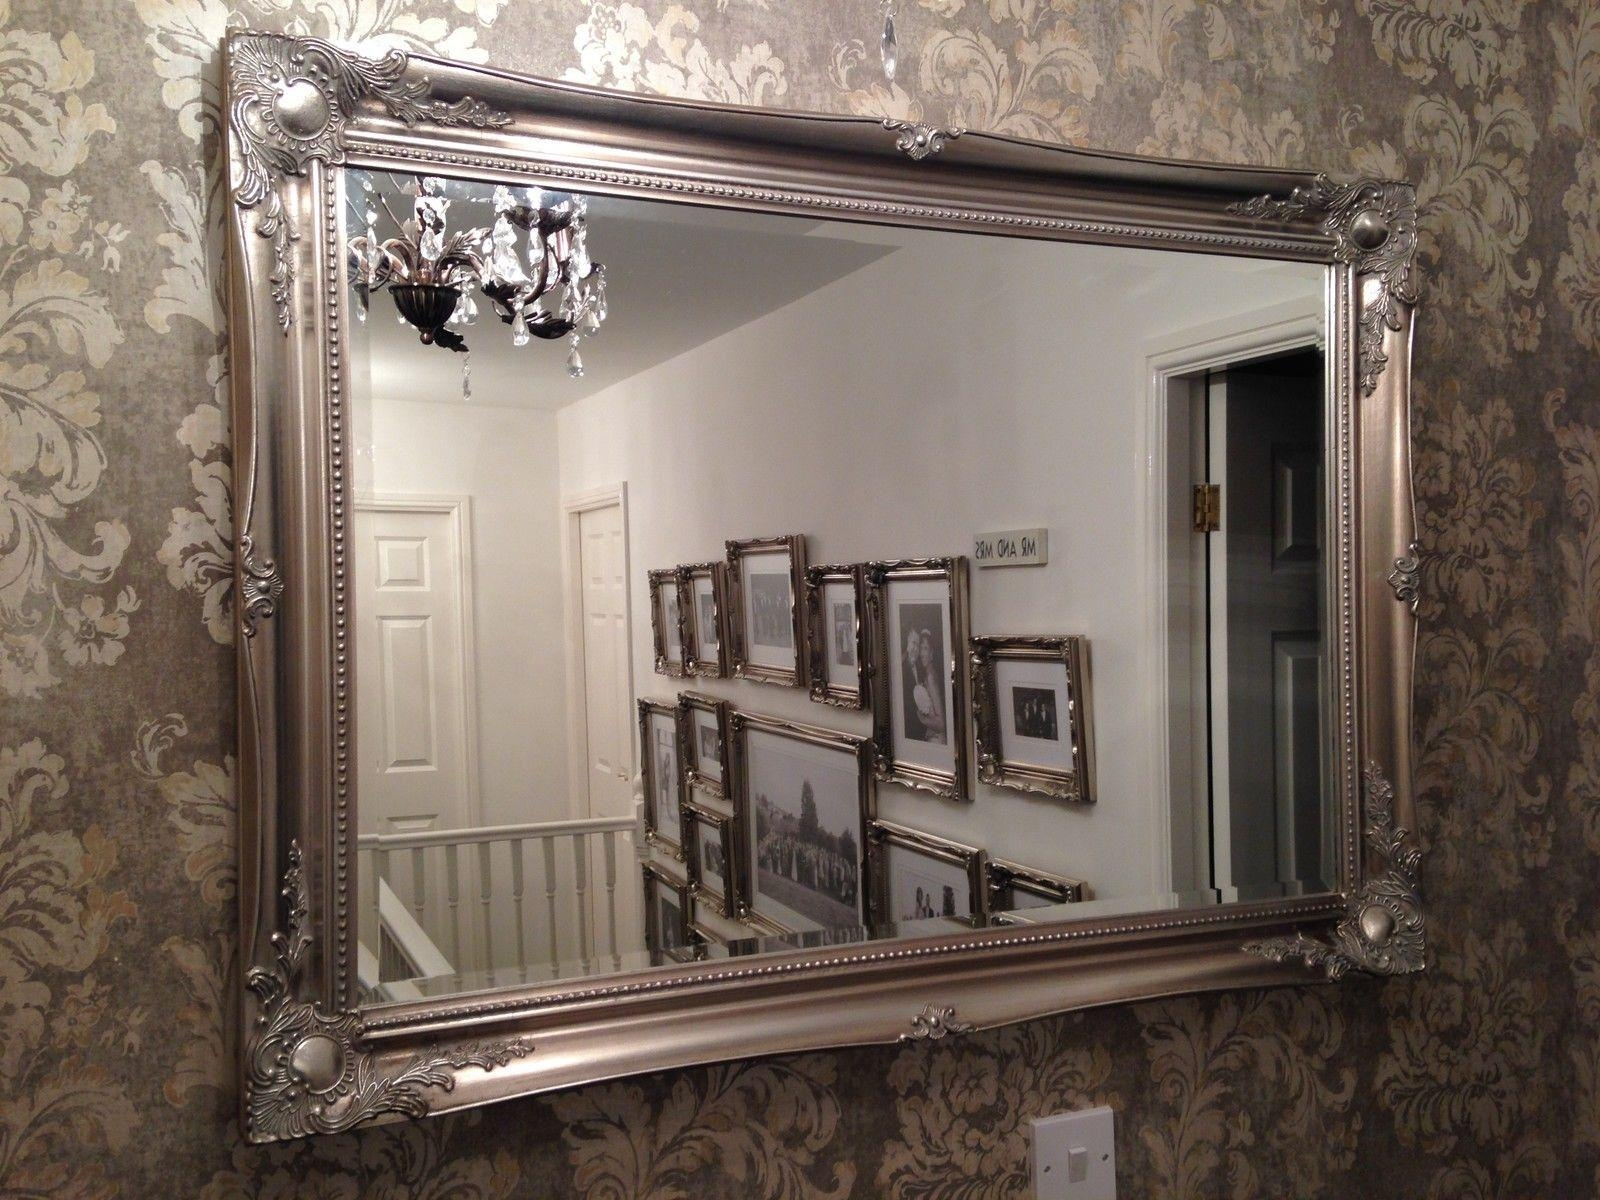 Old Fashioned Wall Mirrors Antique Mirror Wall Covering Vintage For Antique Mirrors For Sale Vintage Mirrors (Image 10 of 20)